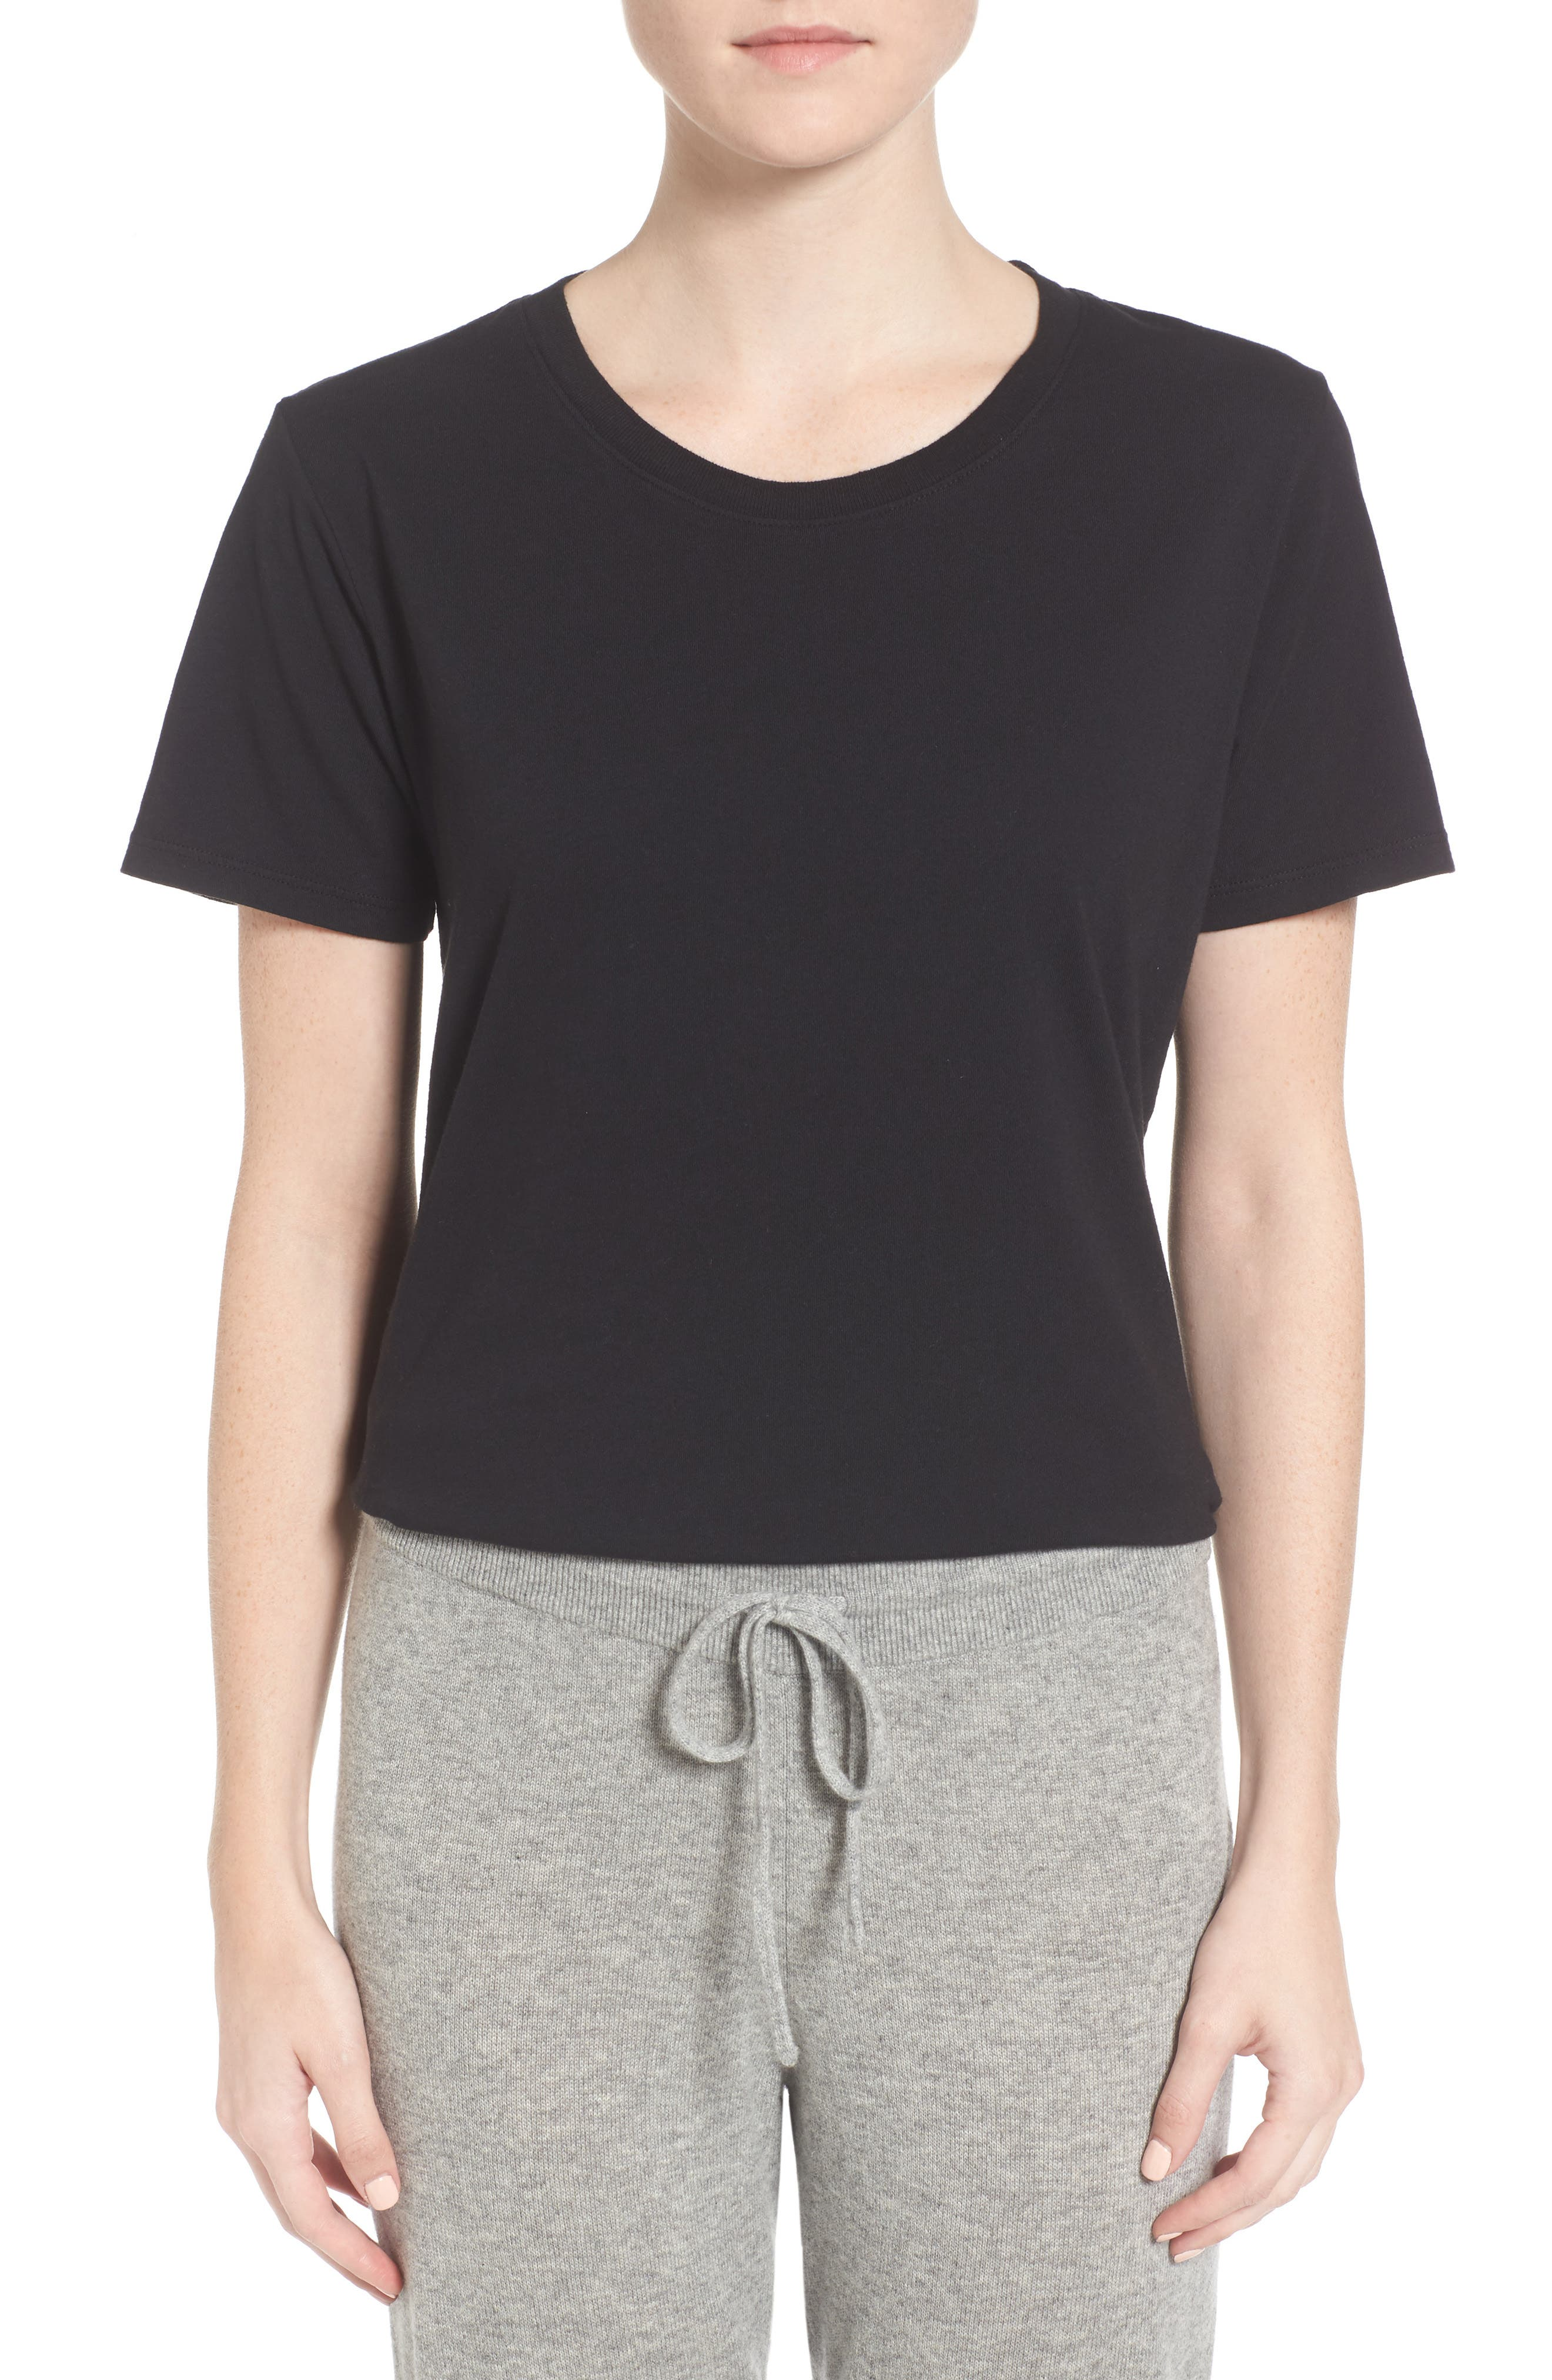 Alternate Image 1 Selected - Everlane The Cotton Box Cut Tee